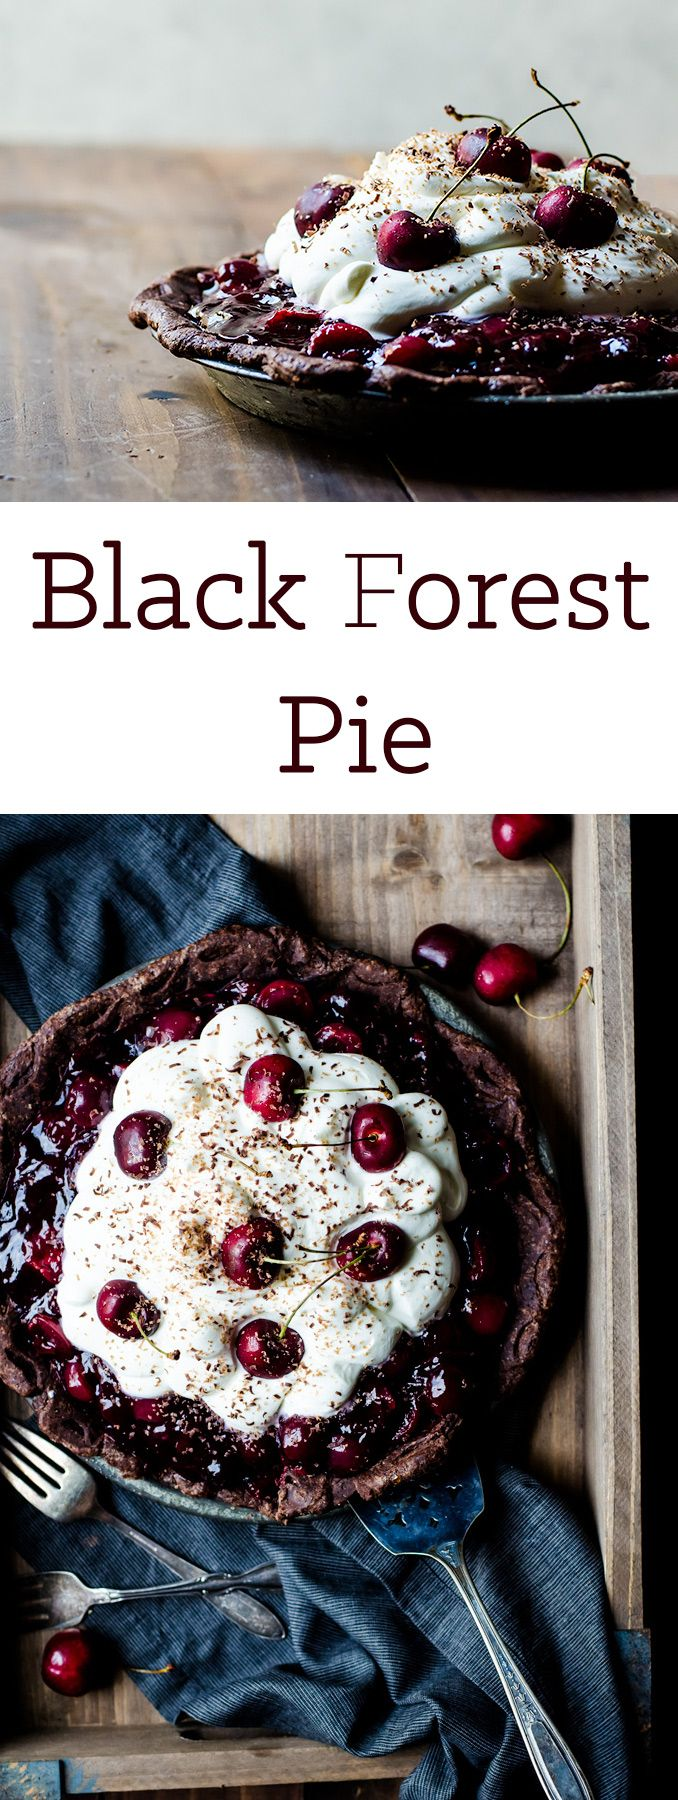 A gorgeous black forest pie that is simple and utterly irresistible.